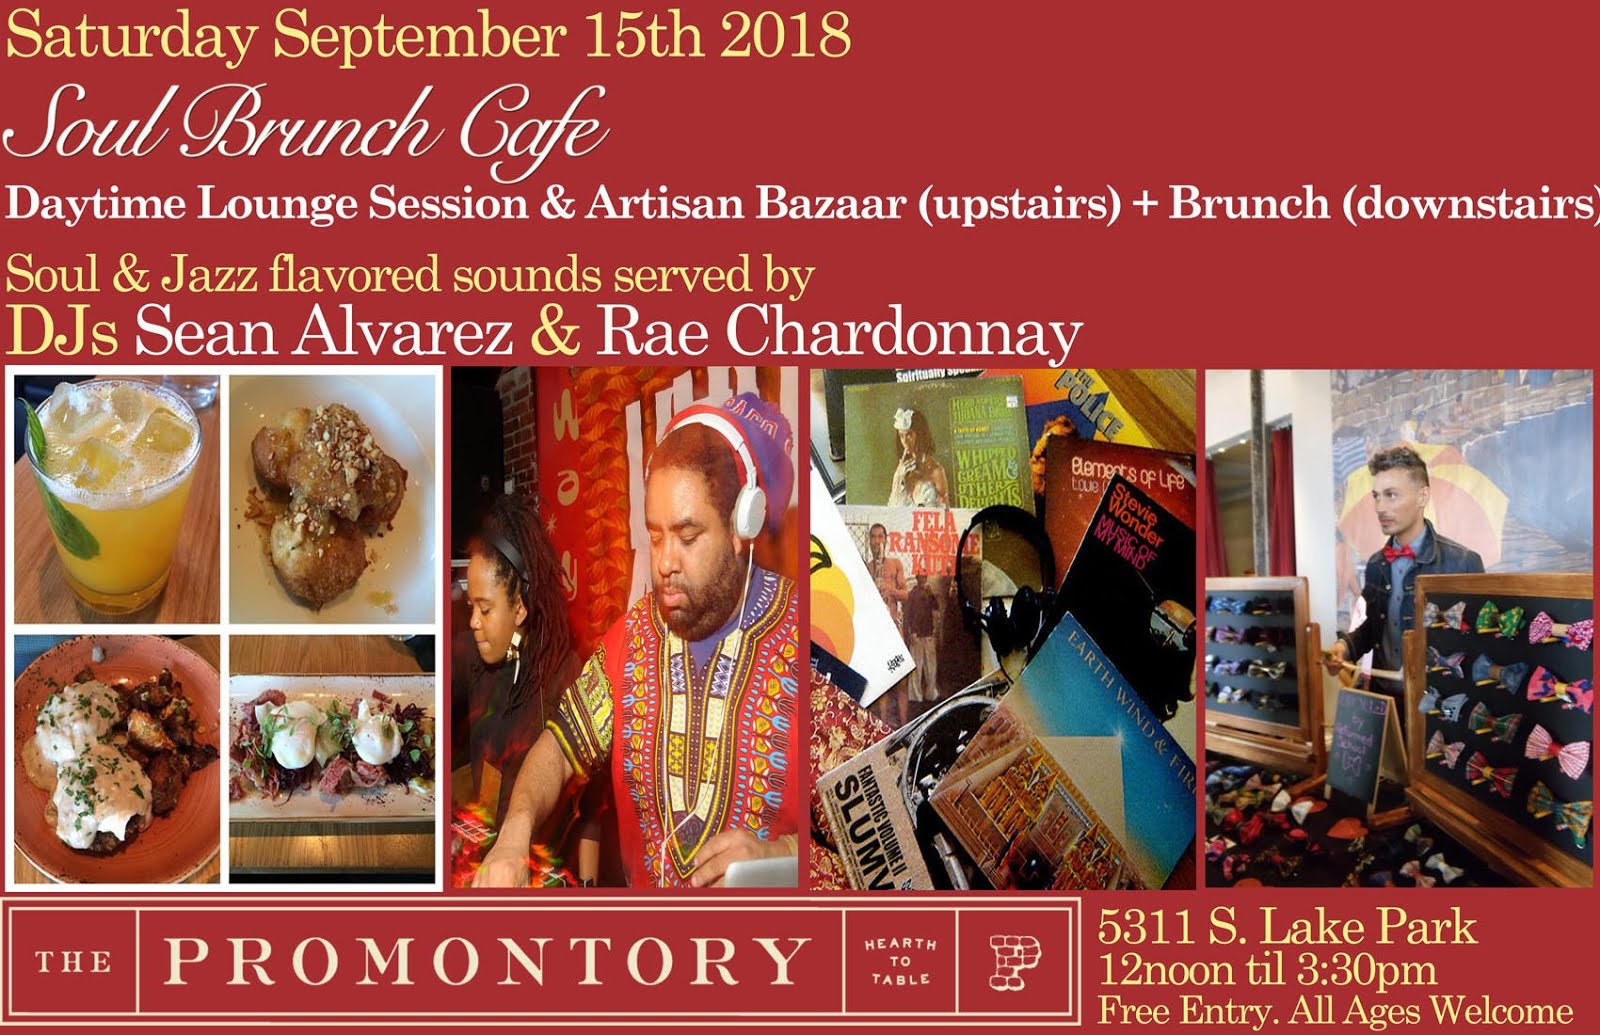 Sat Sept 15th 12noon-330pm: Soul Brunch Cafe @ The Promontory